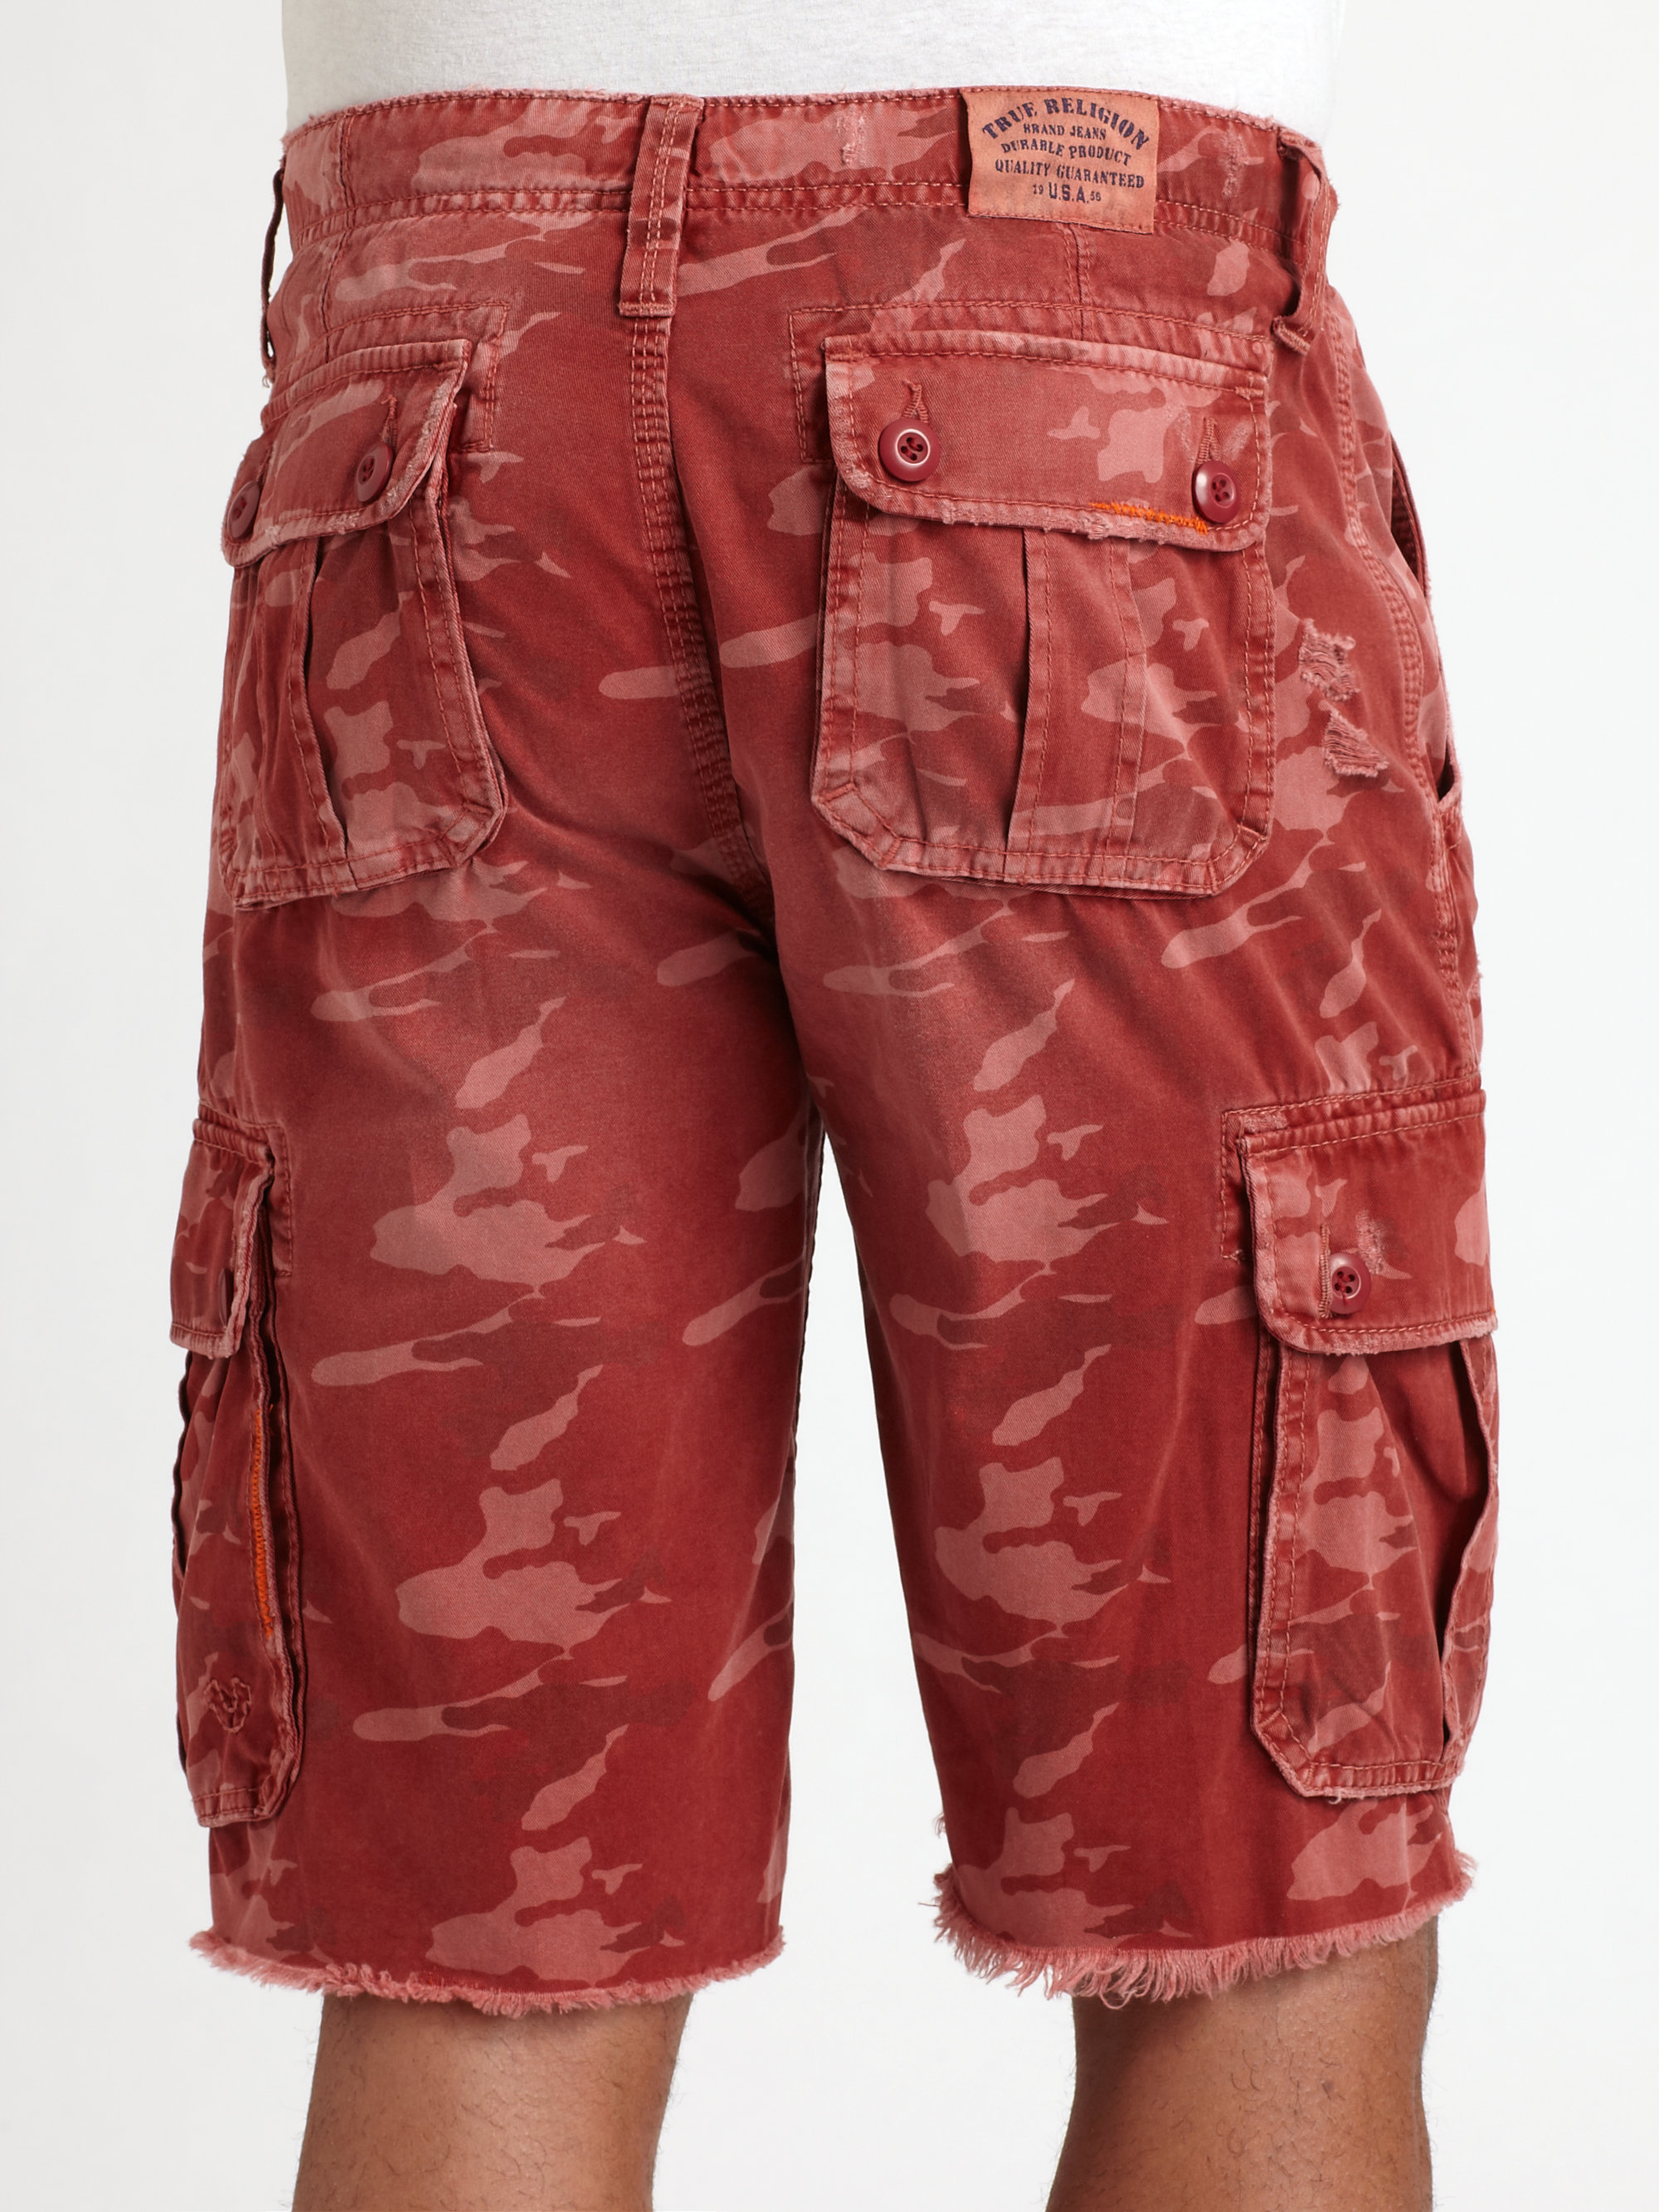 41dc10cde8 True Religion Recon Cargo Shorts in Red for Men - Lyst